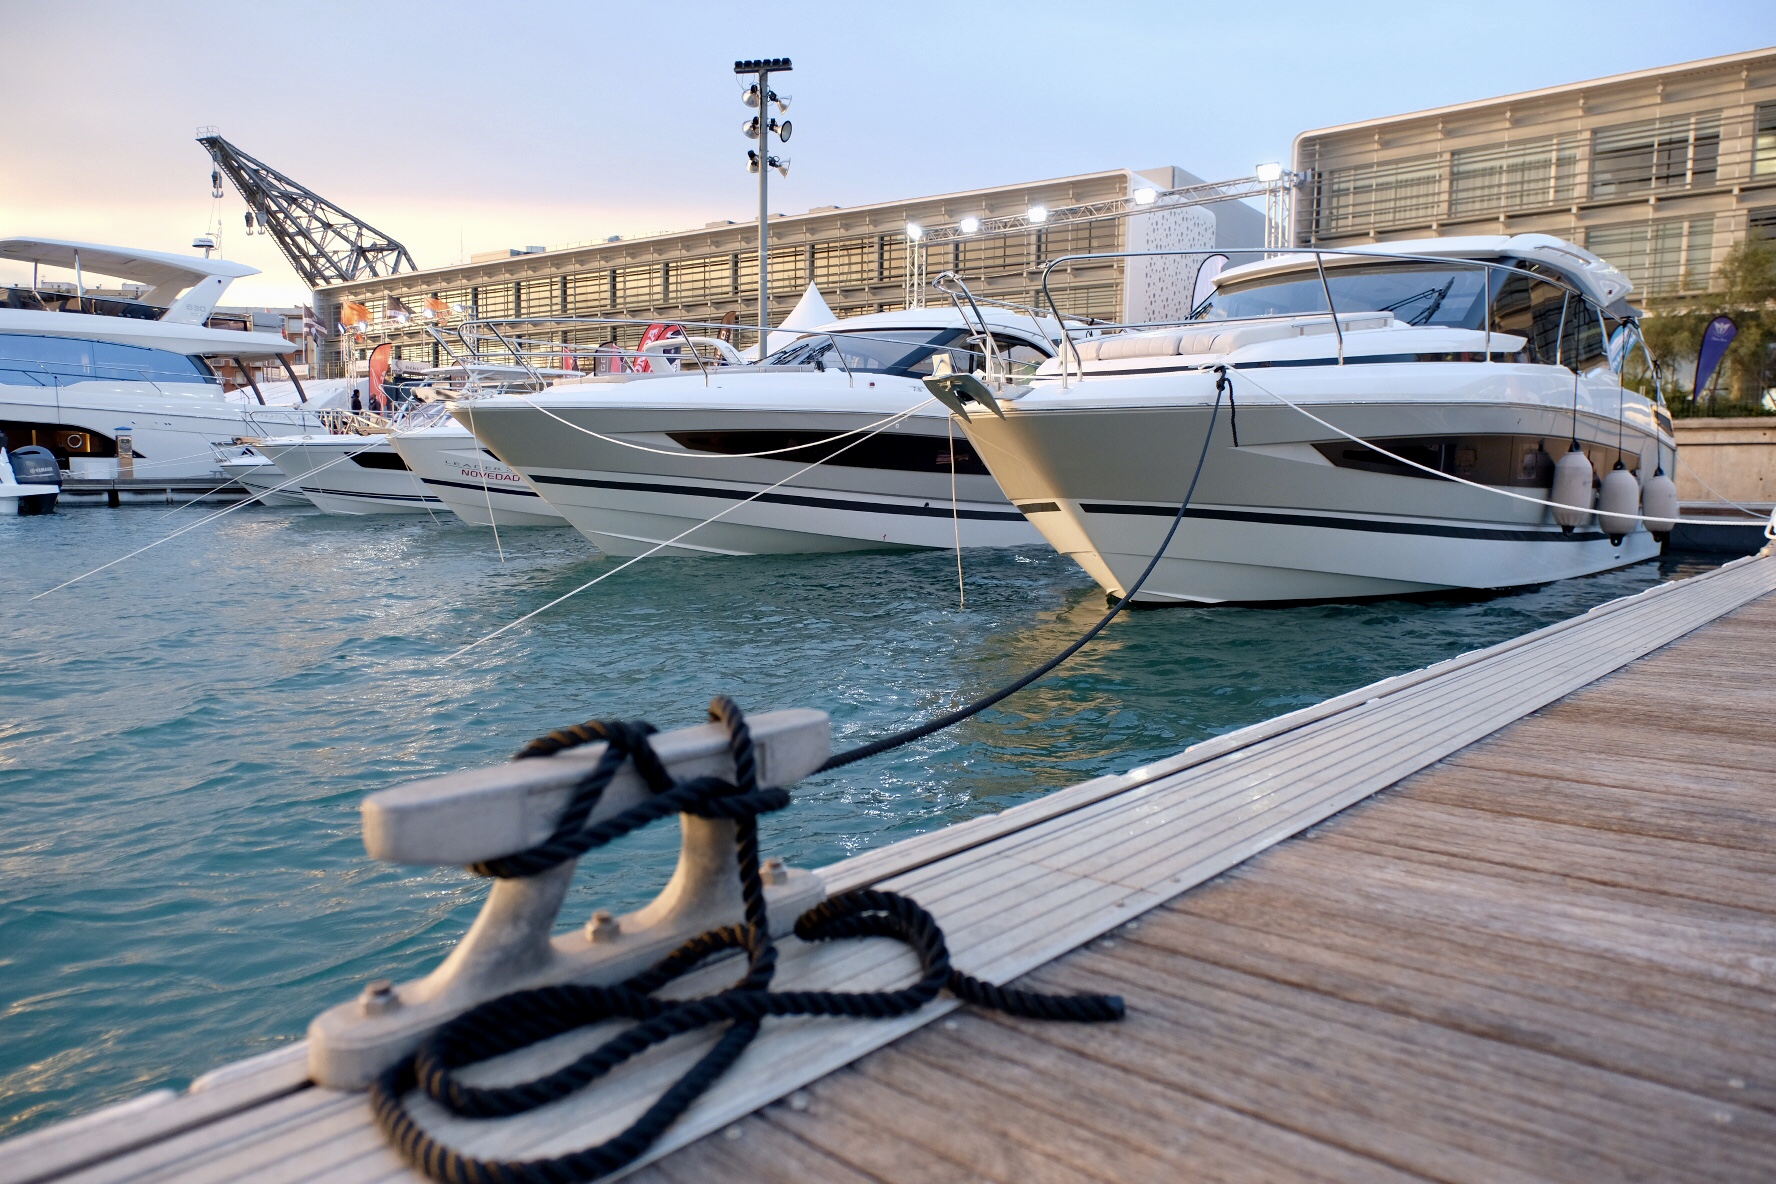 M Yachts joins the Valencia Boat Show